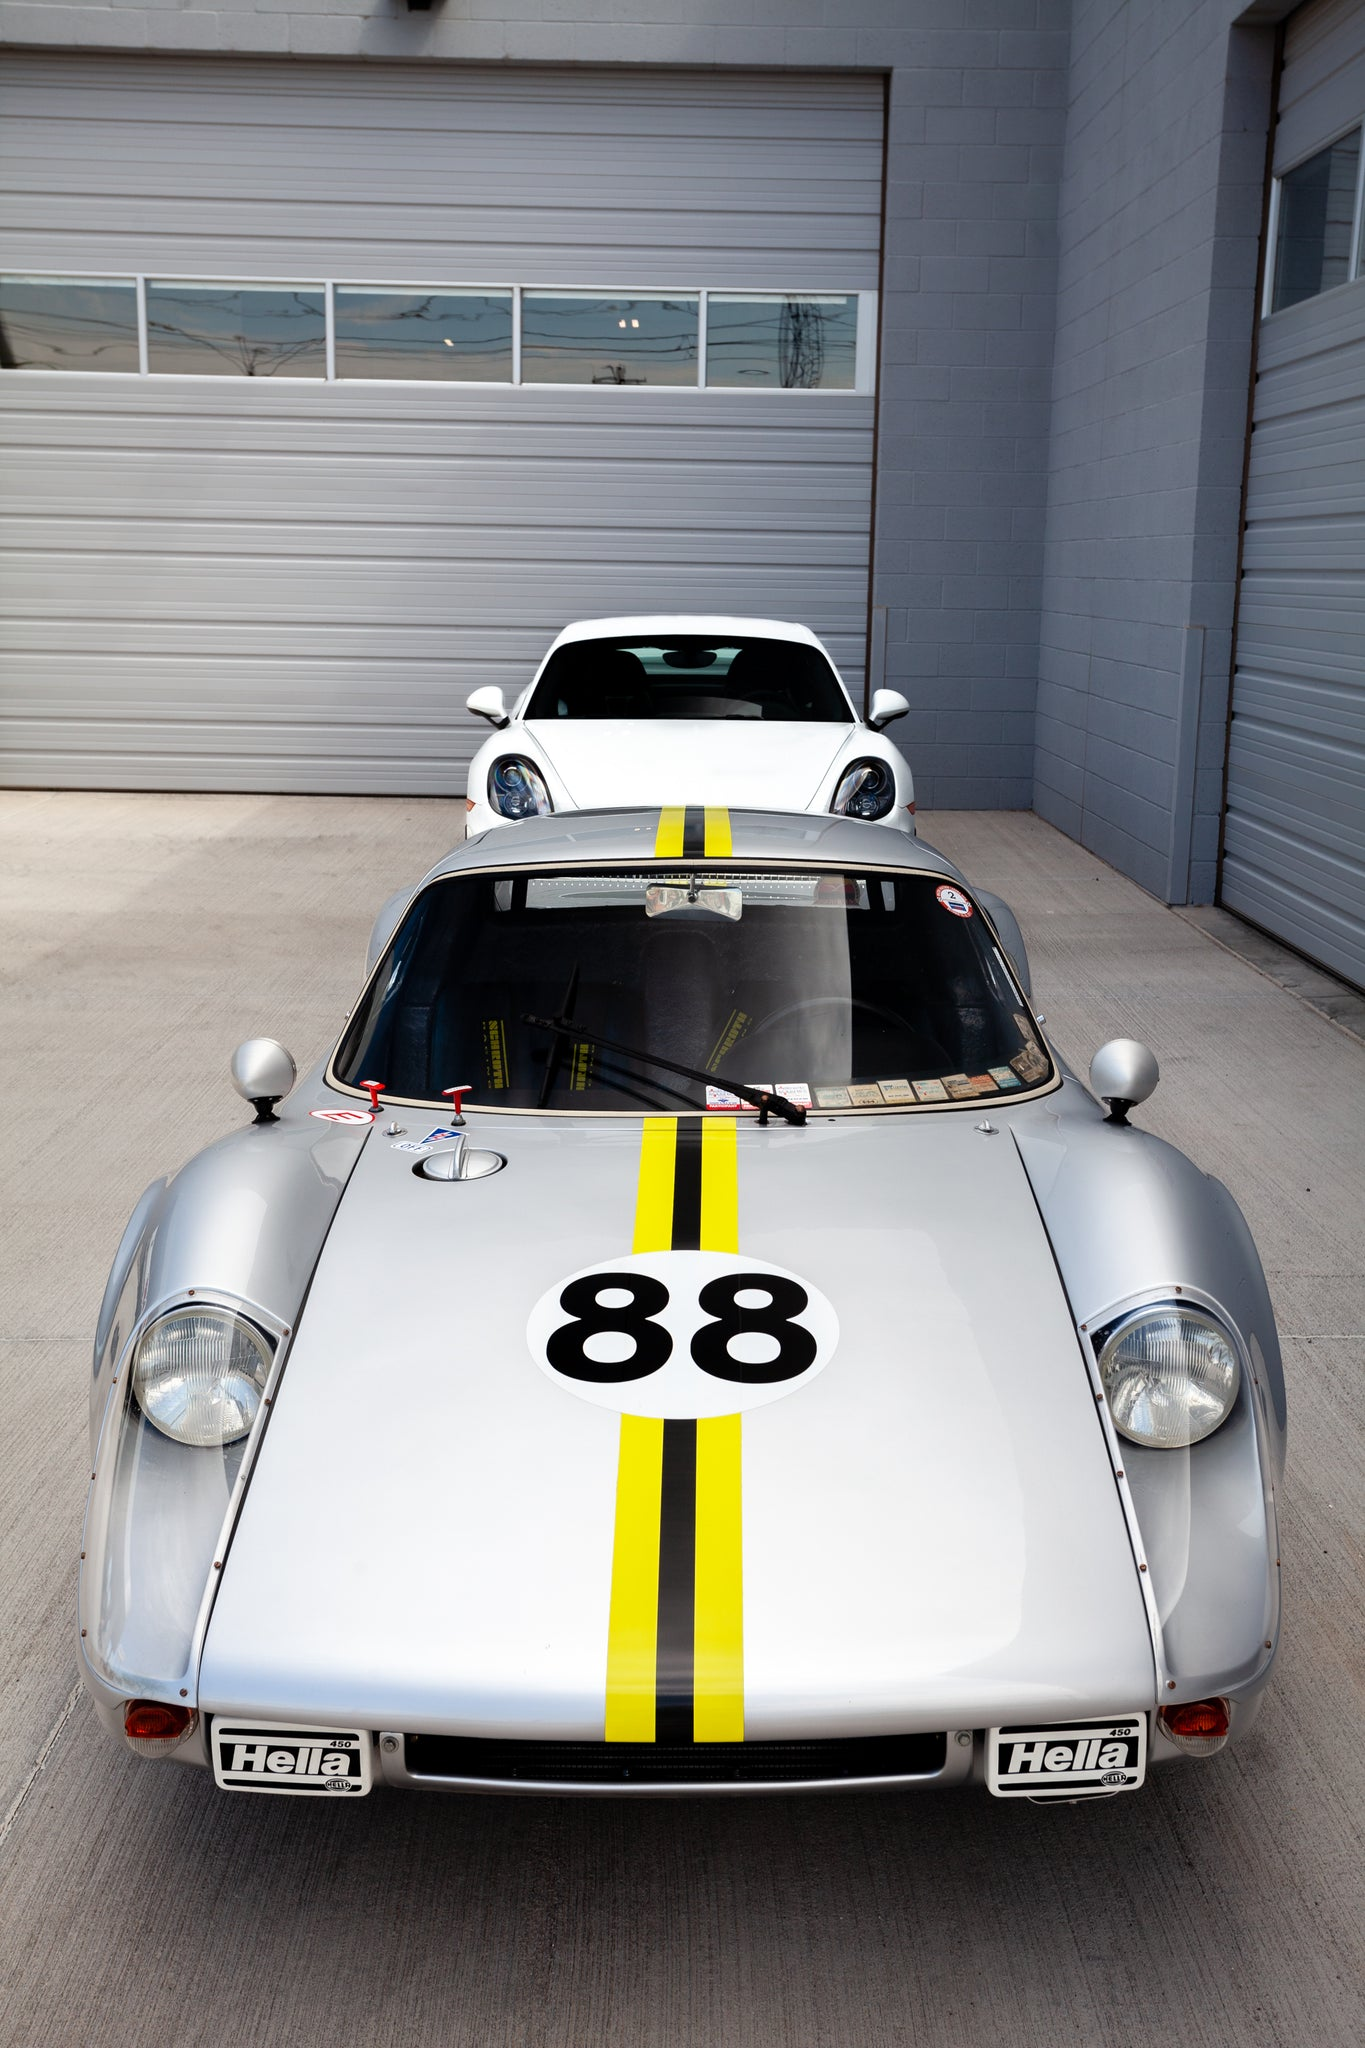 Porsche 904 carrera gts and gt4 head to head